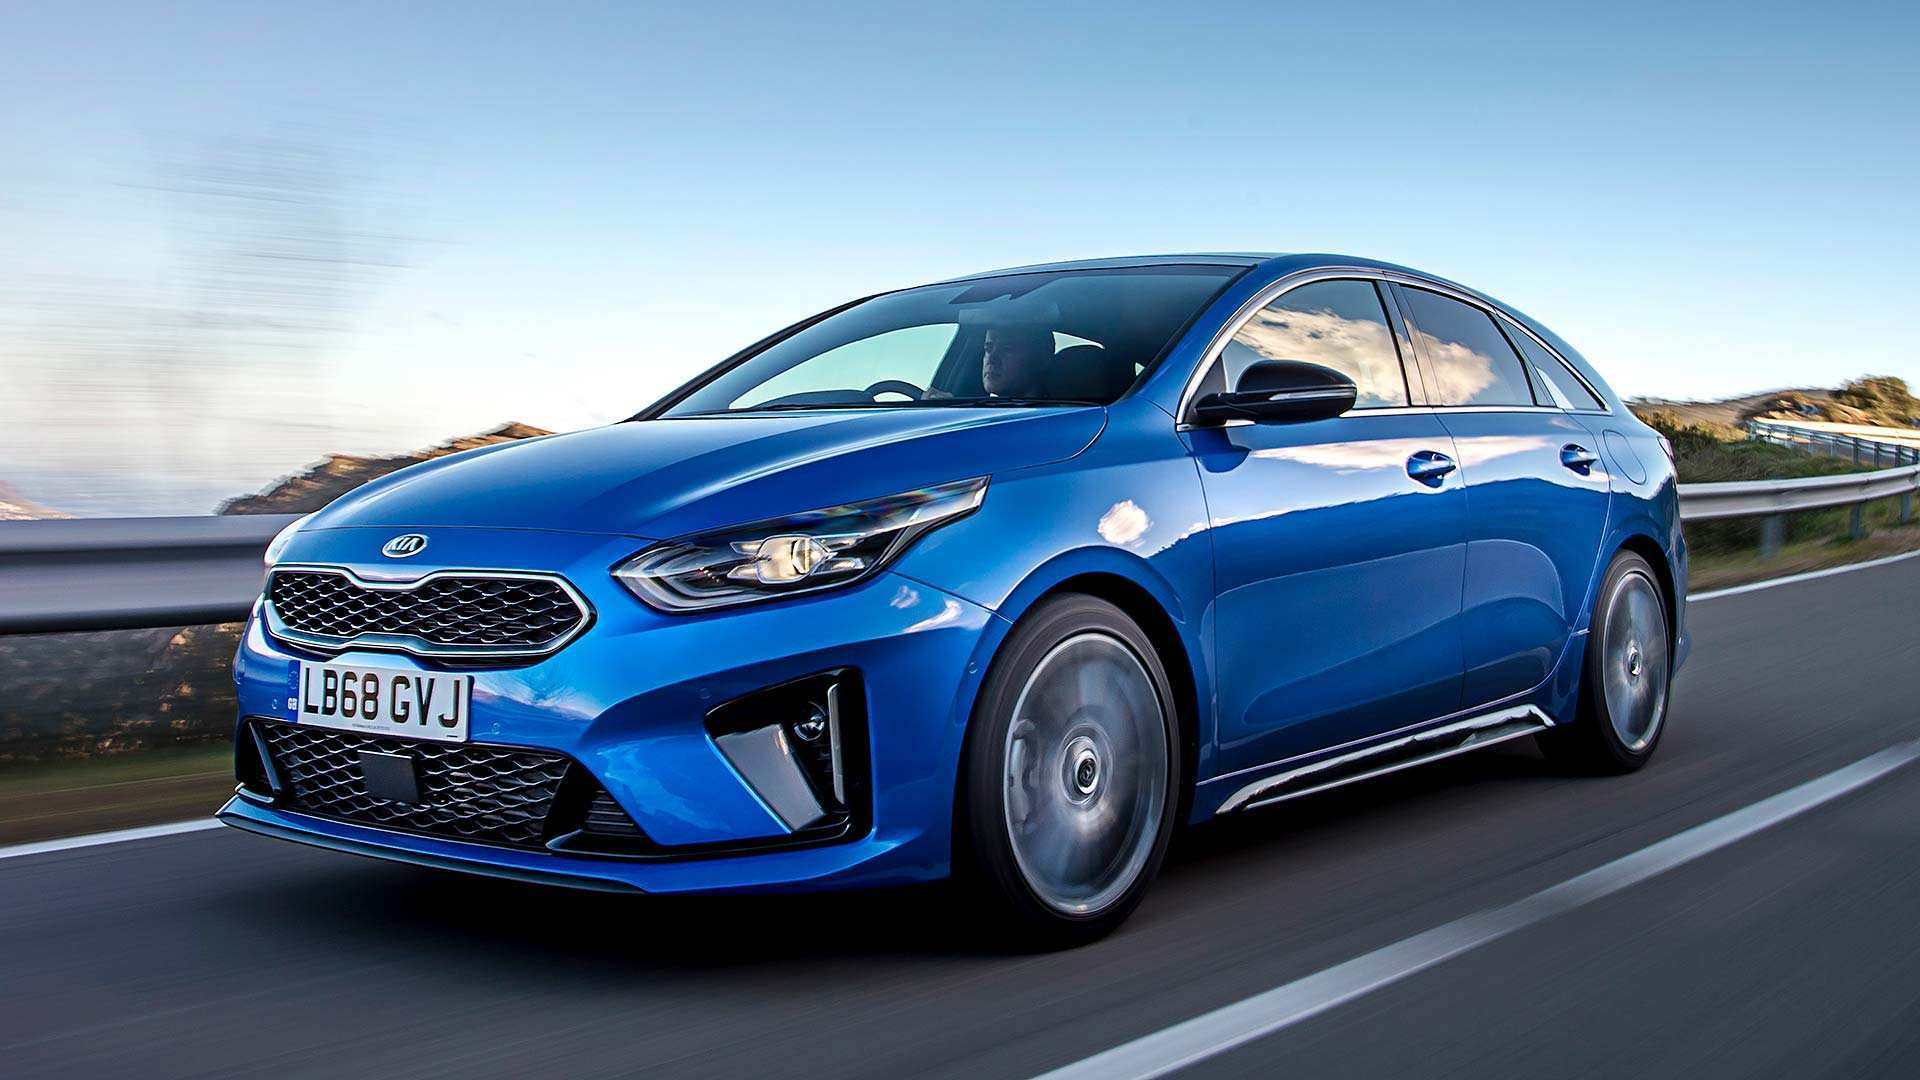 53 All New Kia Pro Ceed Gt 2019 Release with Kia Pro Ceed Gt 2019